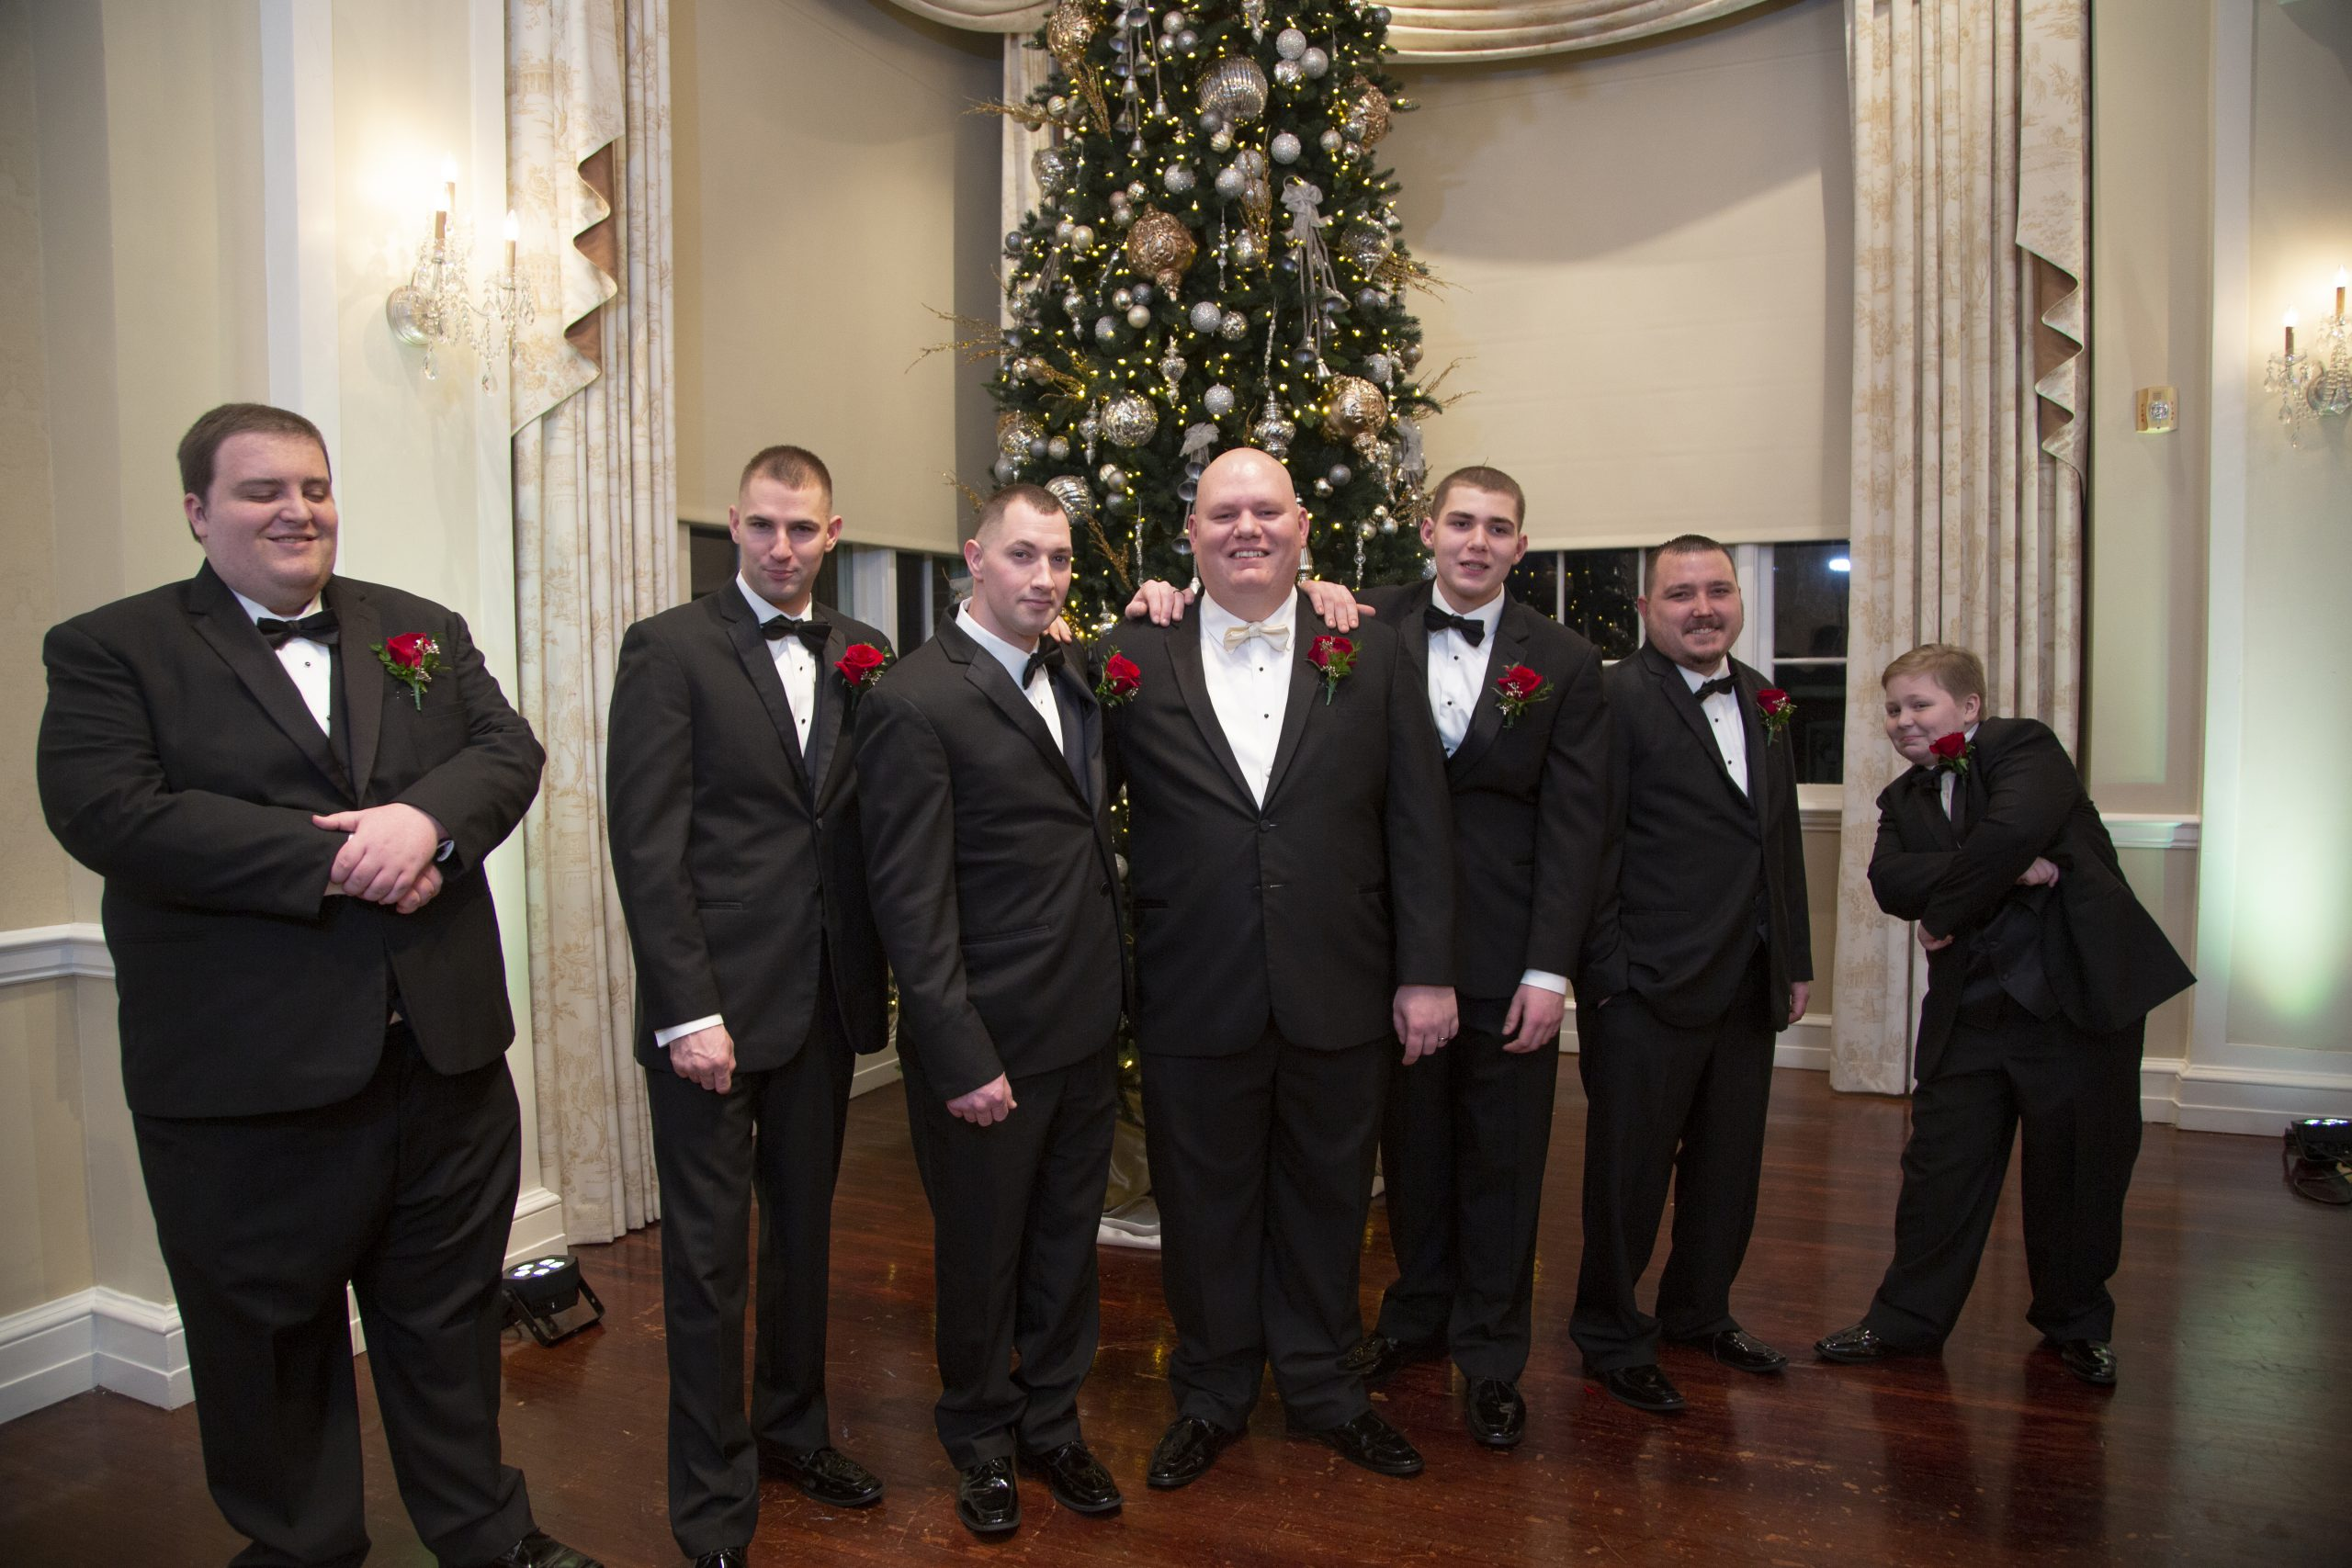 groom and groomsmen by christmas tree. George Washington hotel Christmas wedding